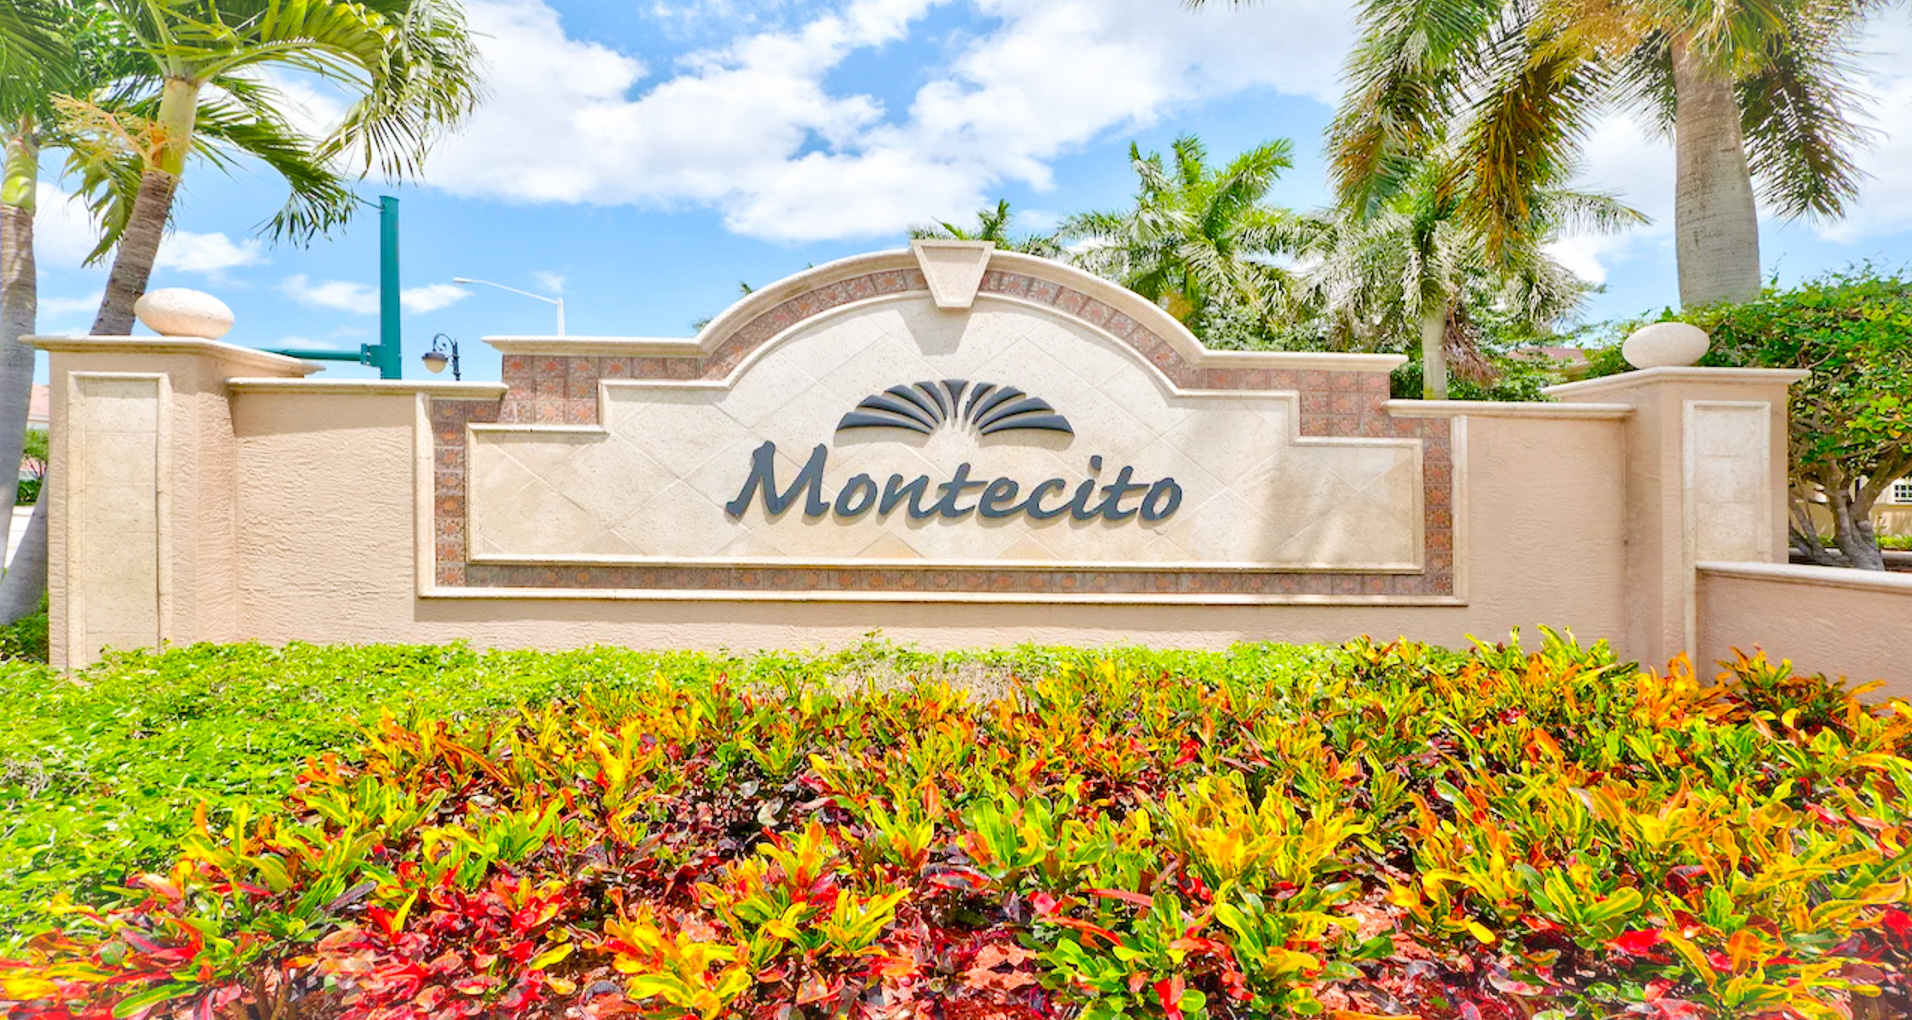 Montecito Homes for Sale in Palm Beach Gardens, FL 33418 community image